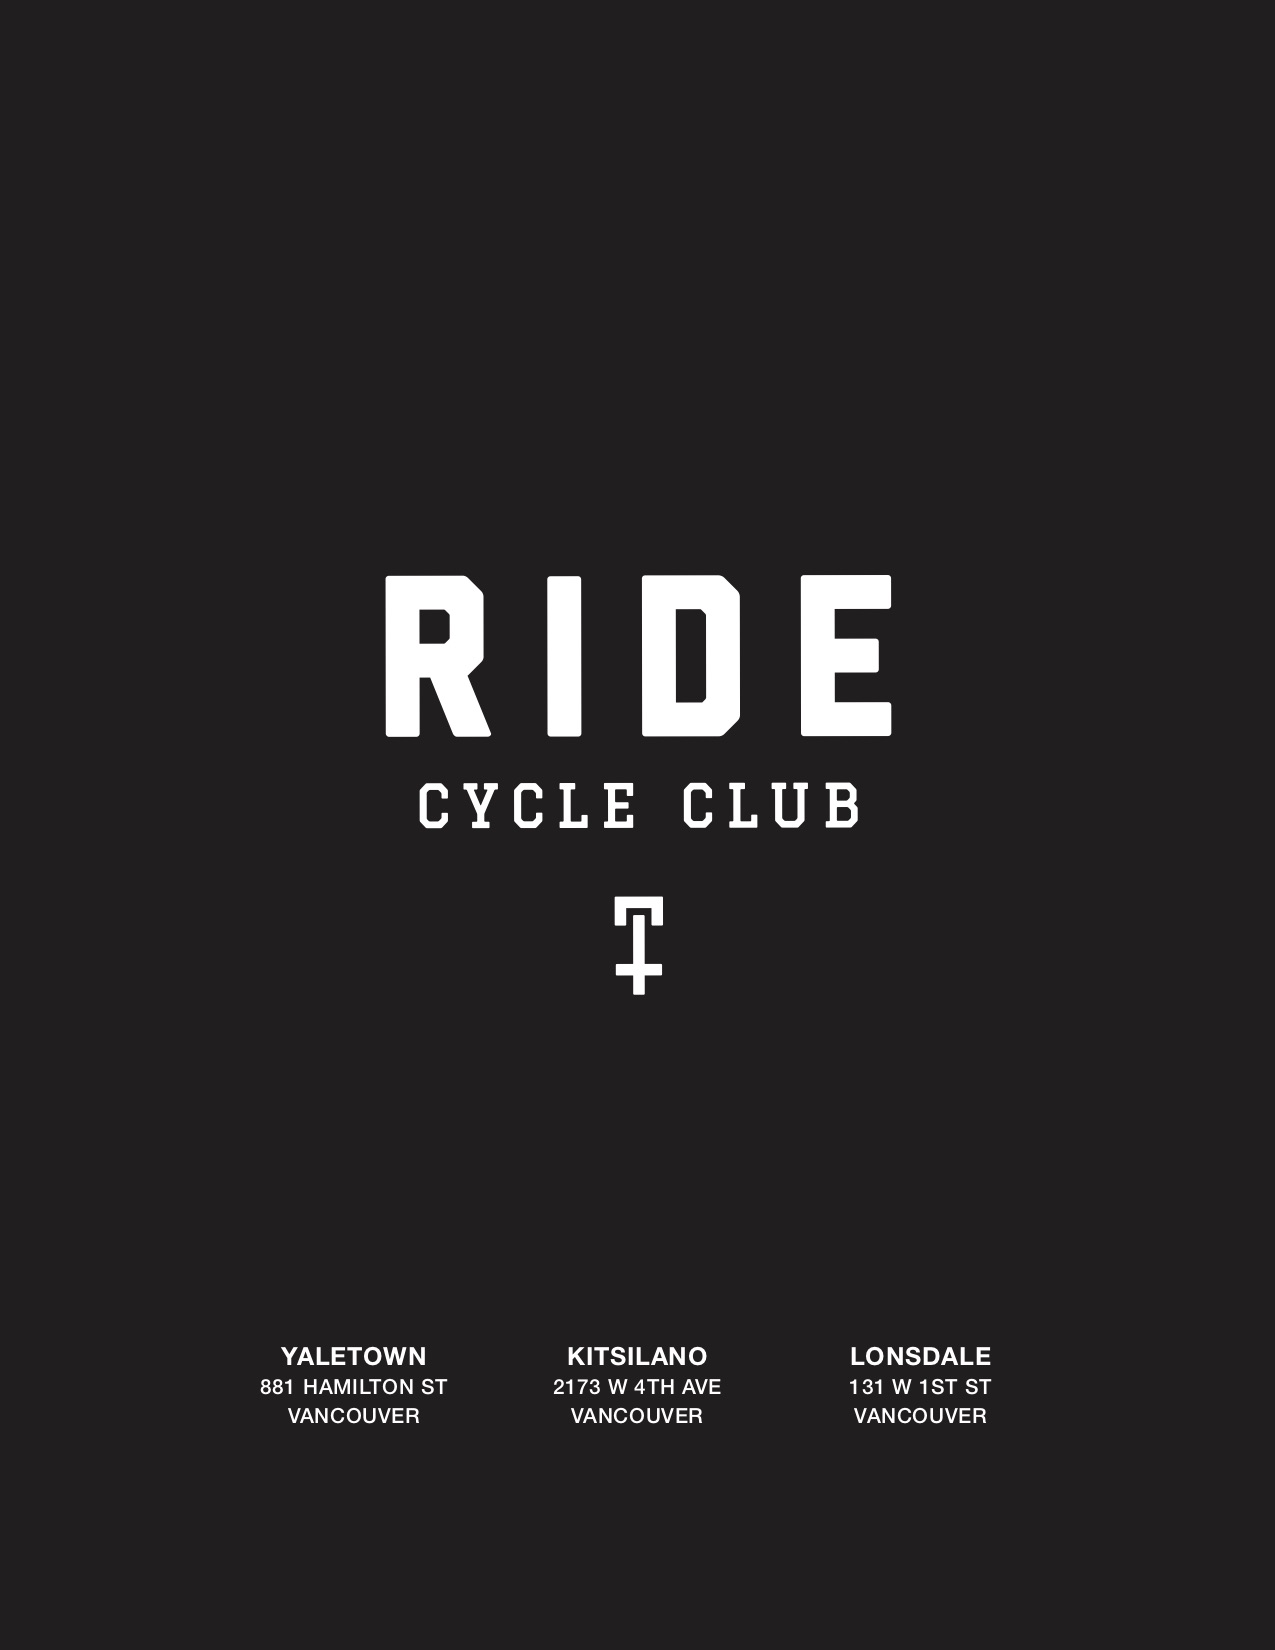 RIDE-LONS-CHARITY POSTER.jpg